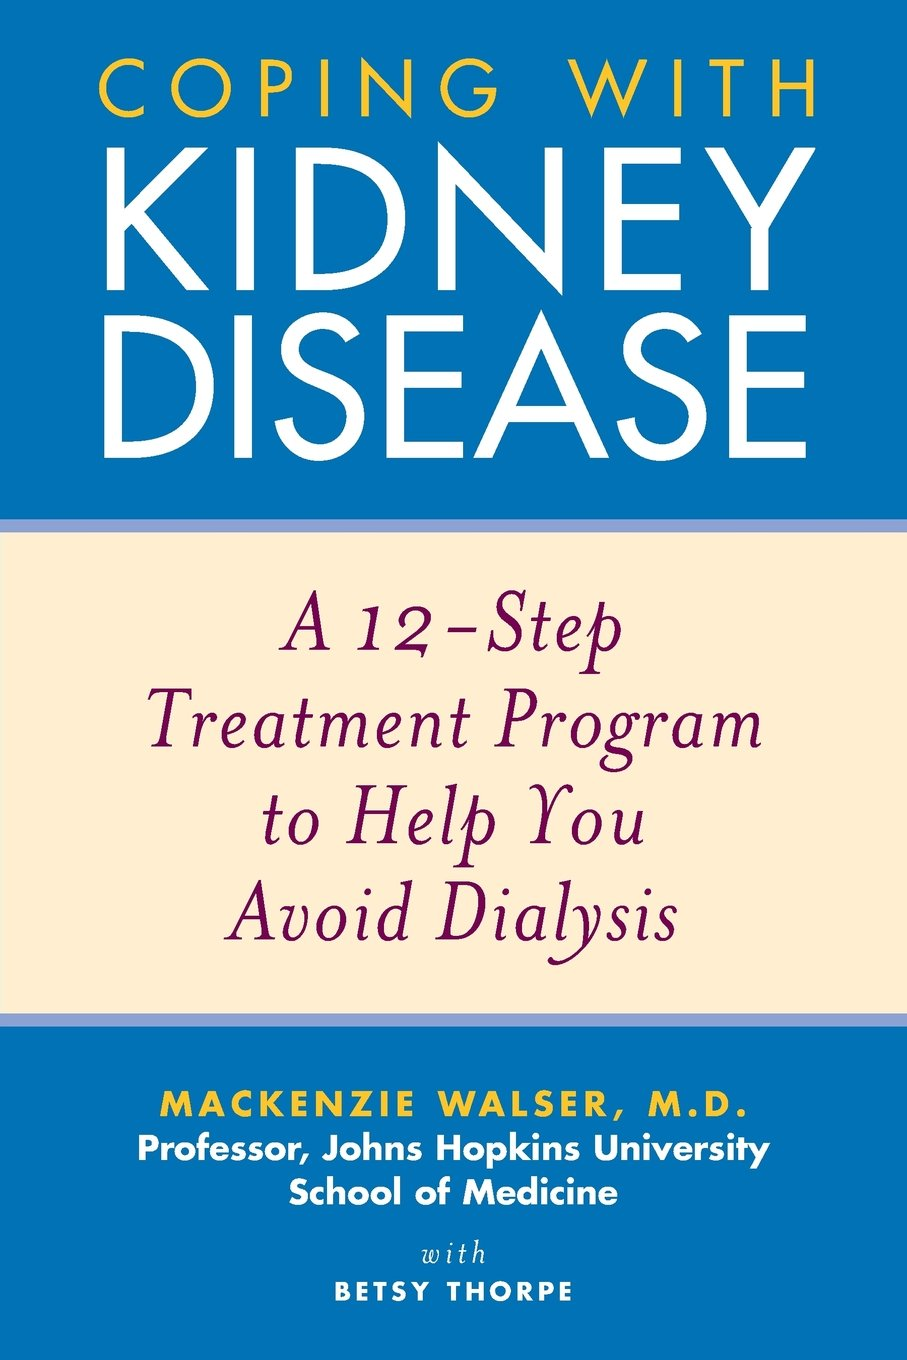 When is dialysis needed?